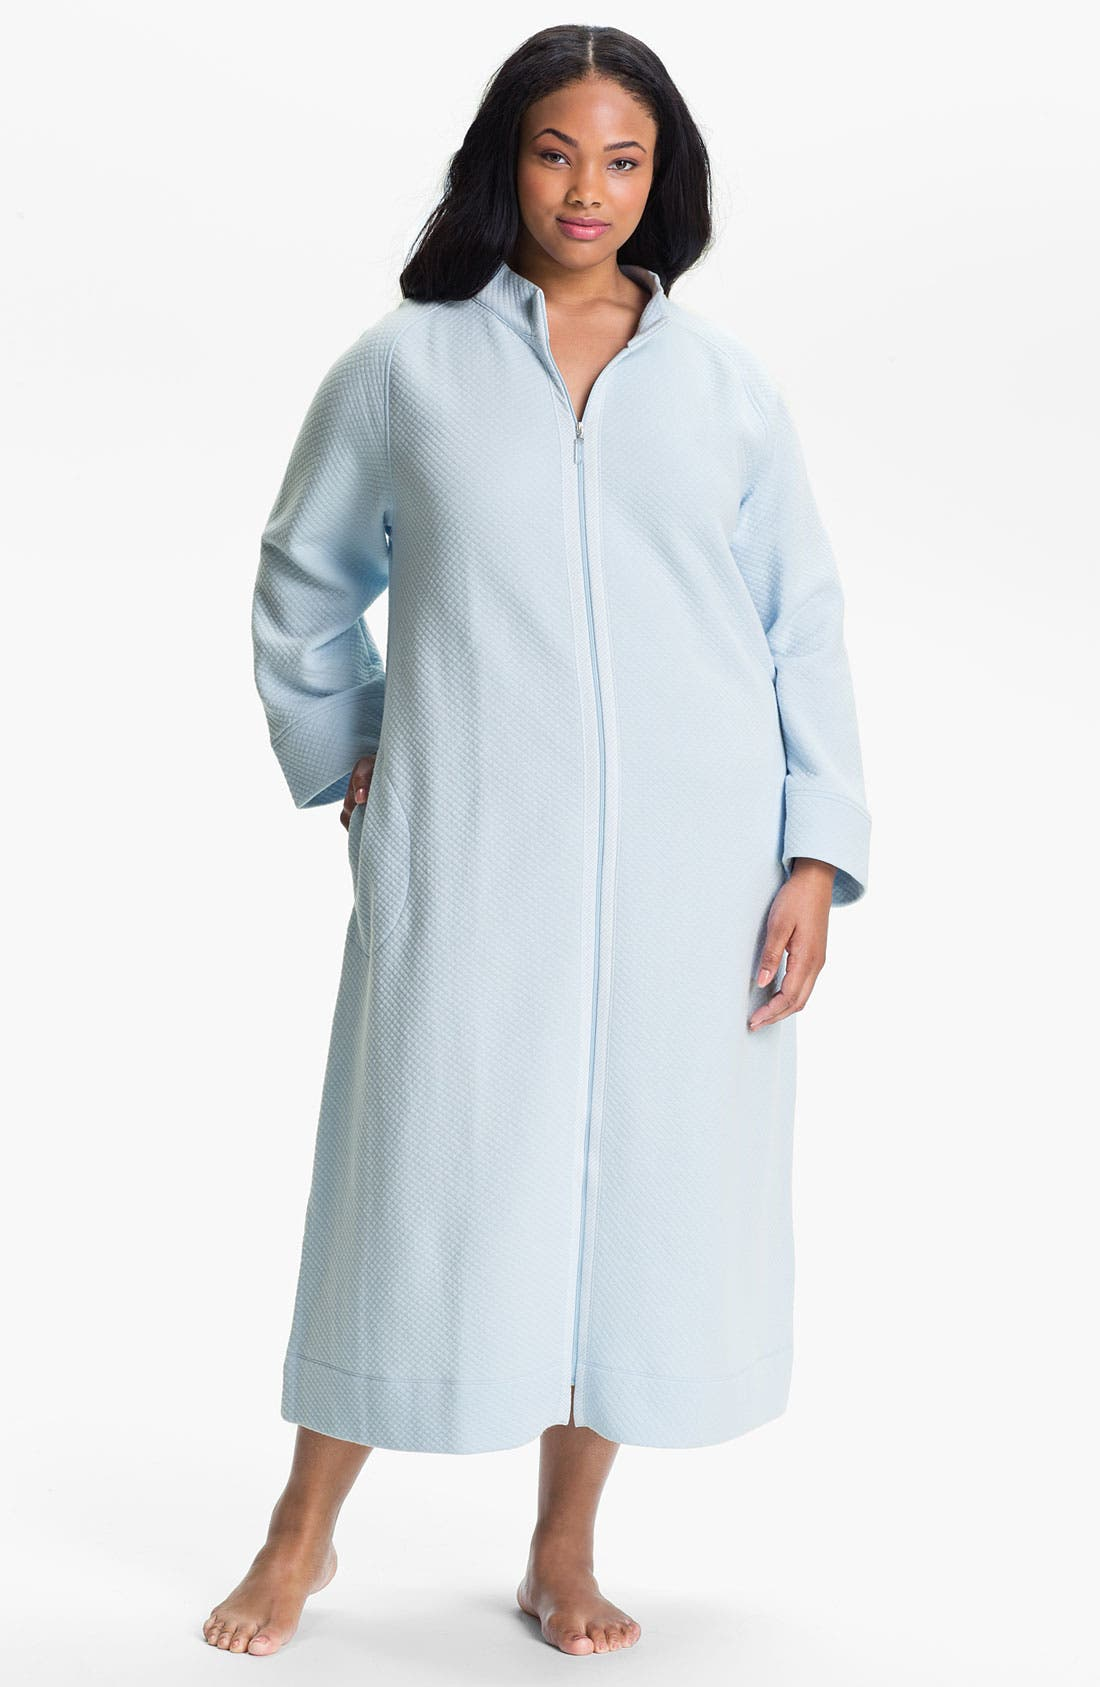 Alternate Image 1 Selected - Carole Hochman Designs Diamond Quilt Zip Front Robe (Plus)